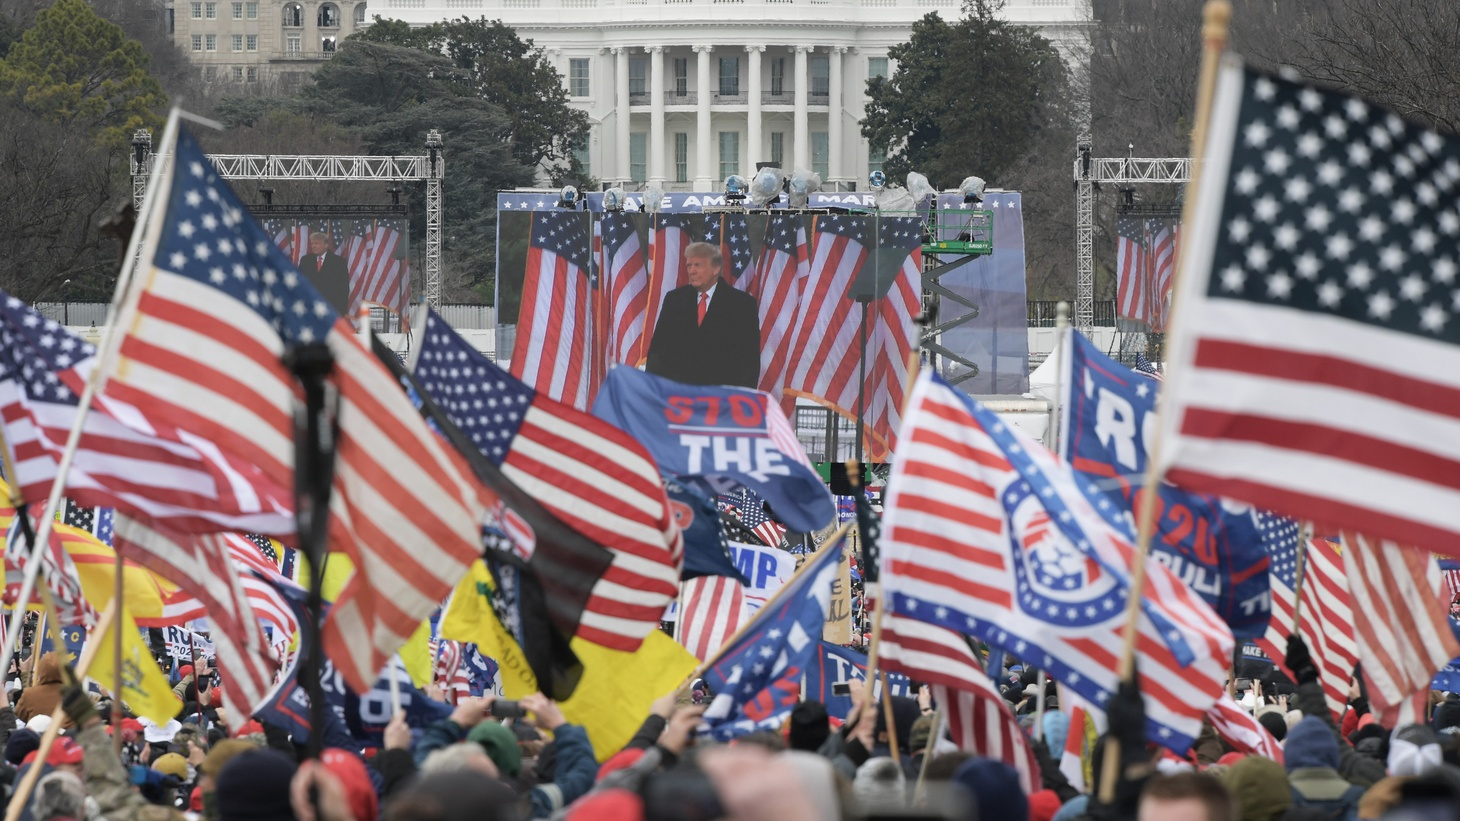 President Donald Trump delivers remarks during a rally on January 06, 2021 at the White House in Washington DC, USA.